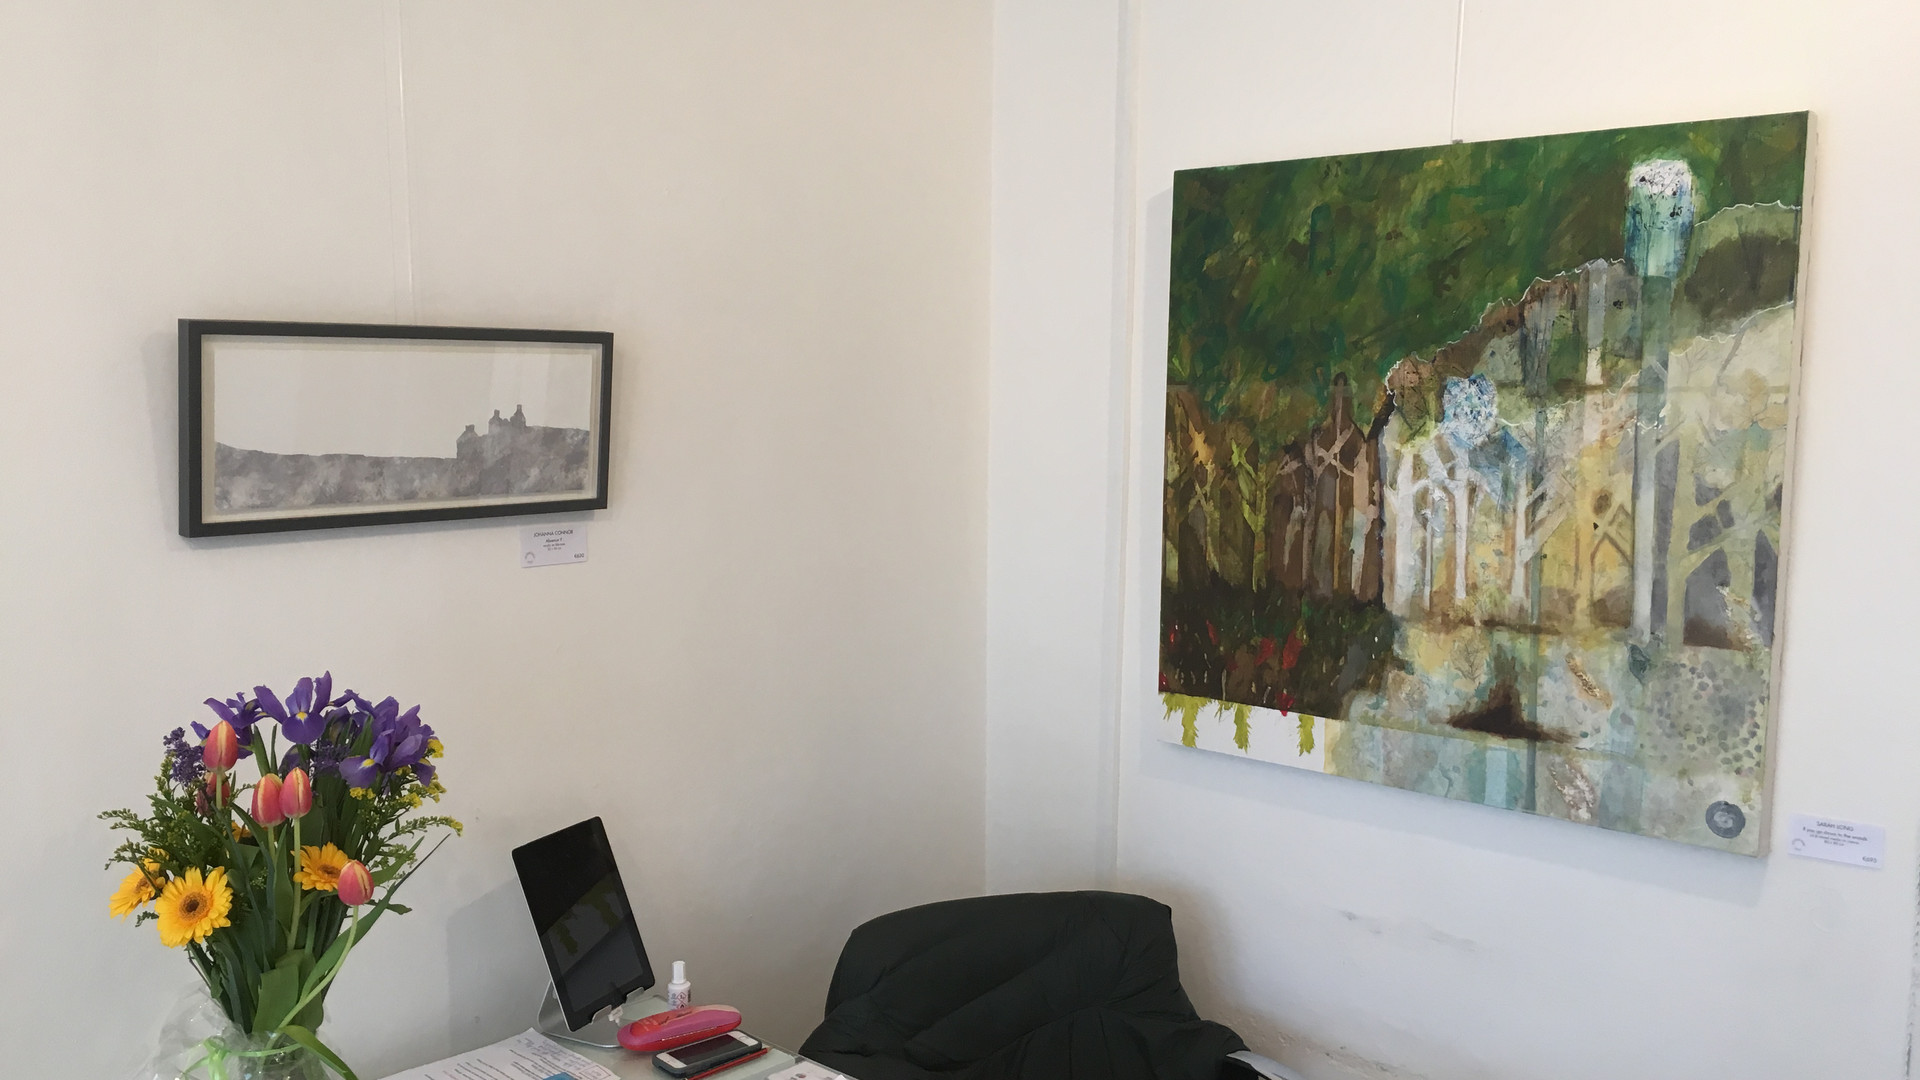 Alternative View Exhibition at Blue House Gallery, Schull